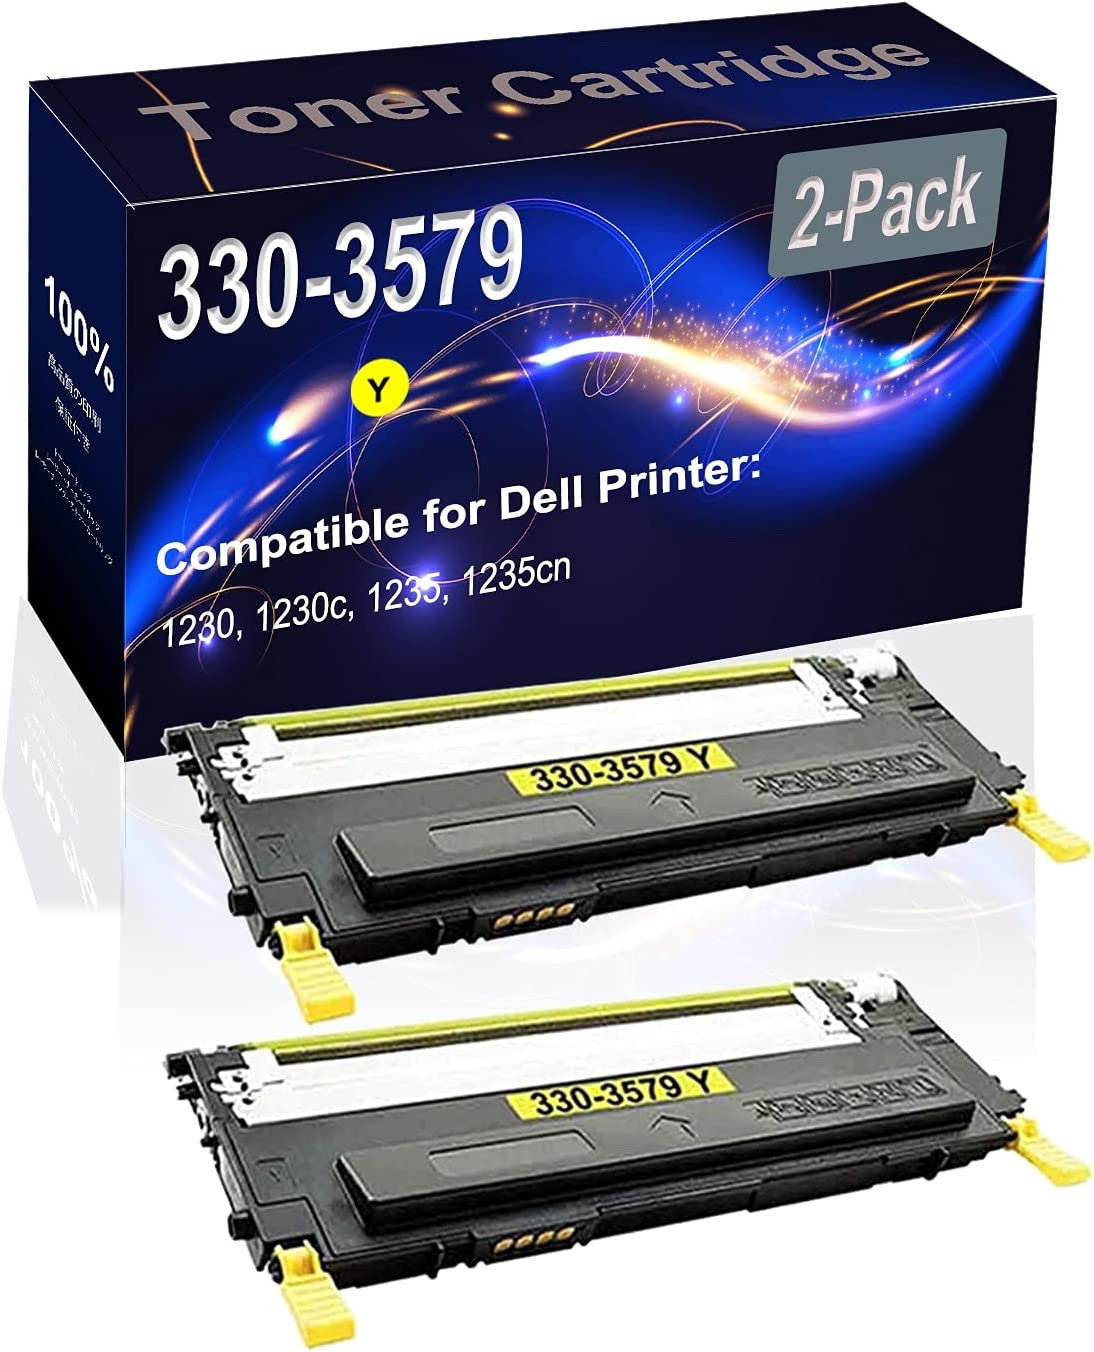 2-Pack (Yellow) Compatible 1230 1230c 1235cn Laser Printer Toner Cartridge (High Capacity) Replacement for Dell 330-3579 Printer Toner Cartridge